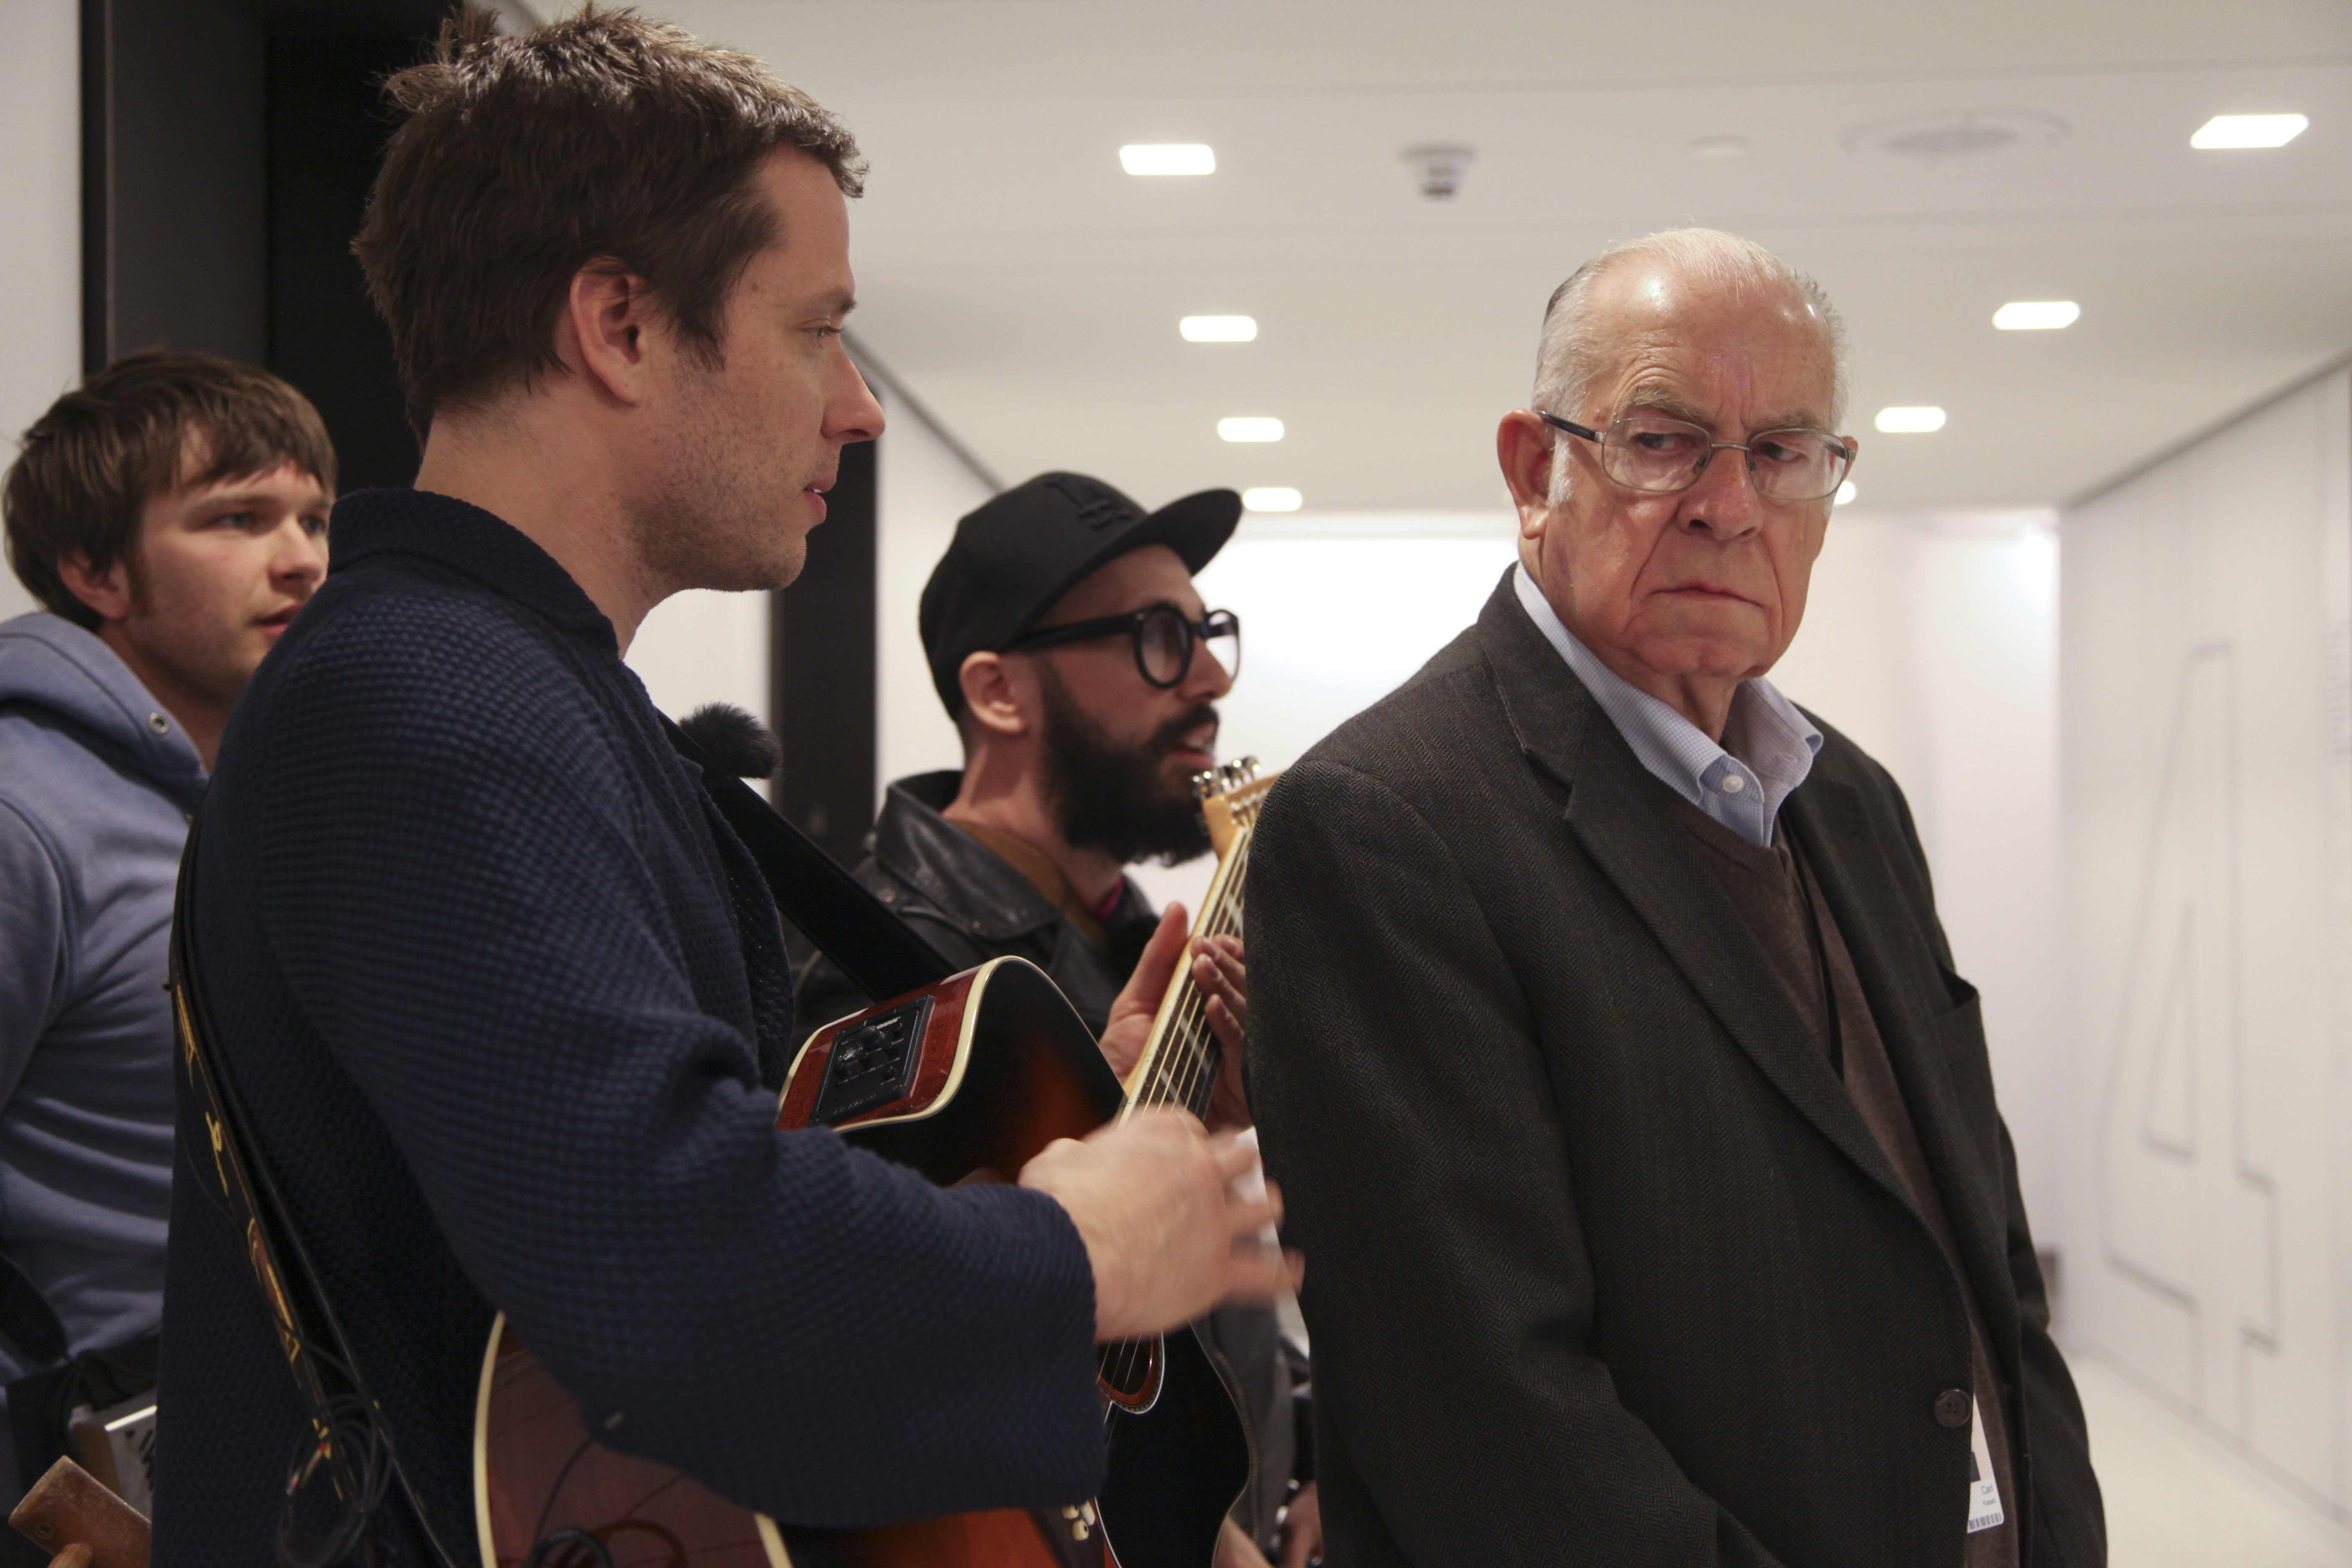 Carl Kasell, Wait Wait...Don't Tell Me! Judge and Scorekeeper, casts a sideways glance at the band during his scene, which takes place in an elevator of NPR's new headquarters.